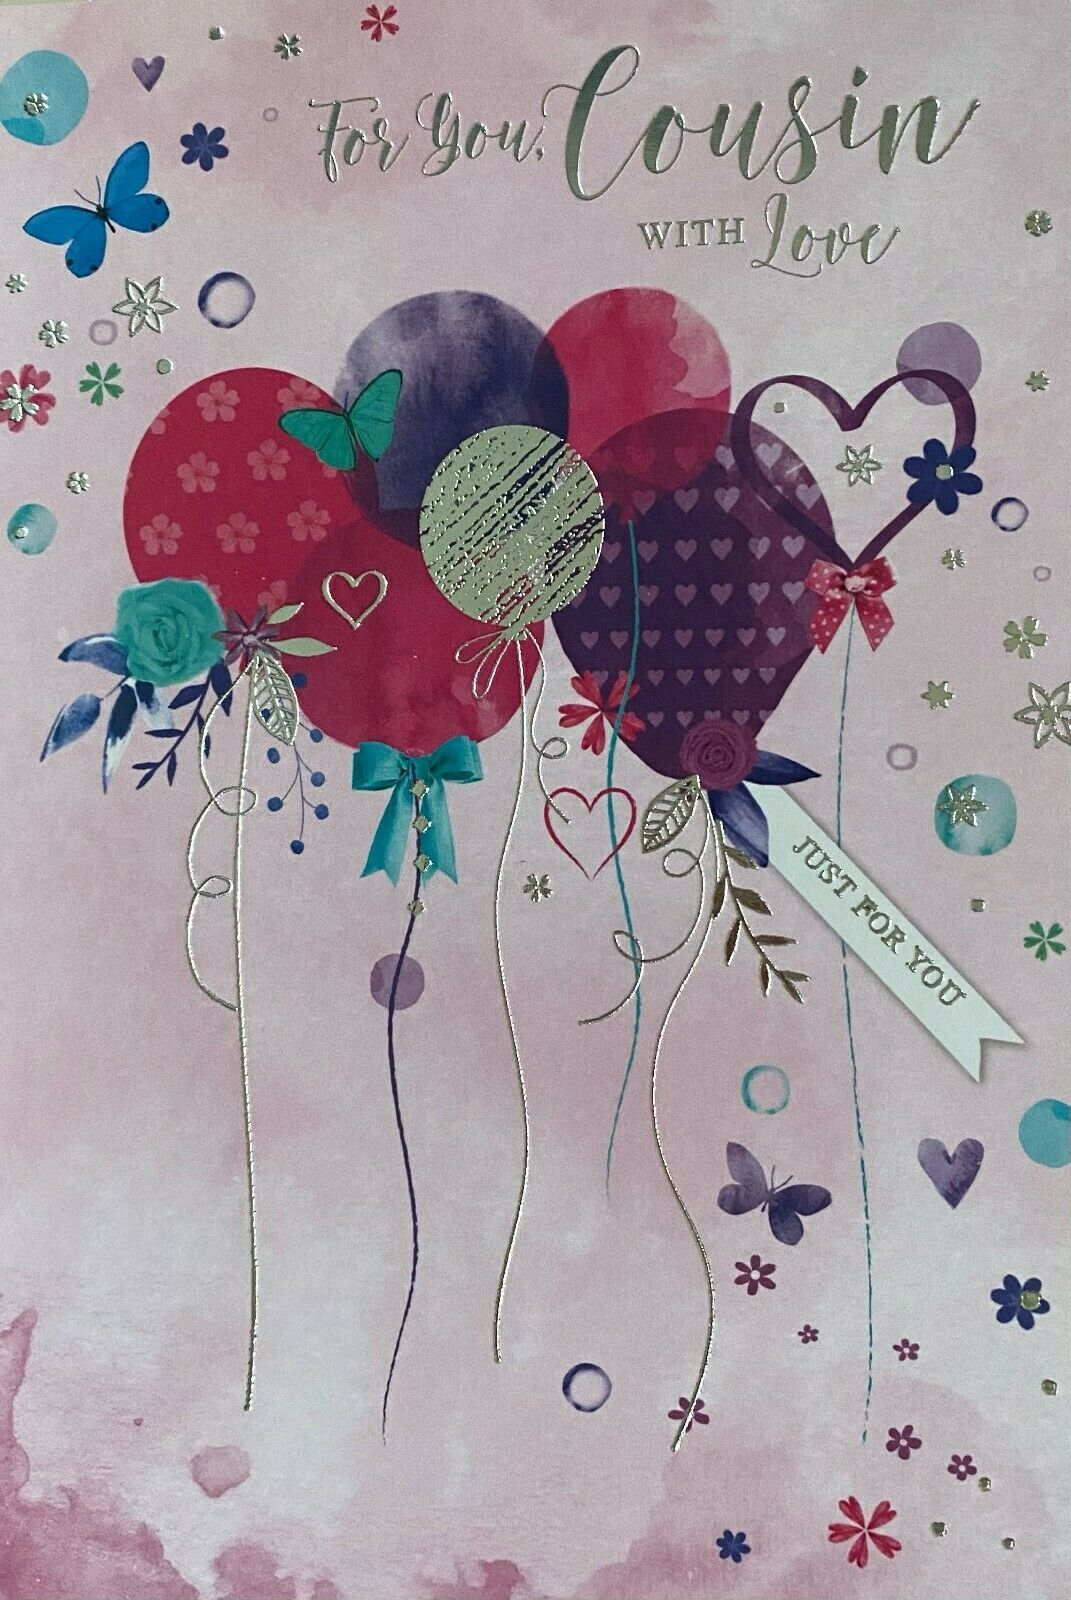 For You, Cousin With Love - Birthday Card